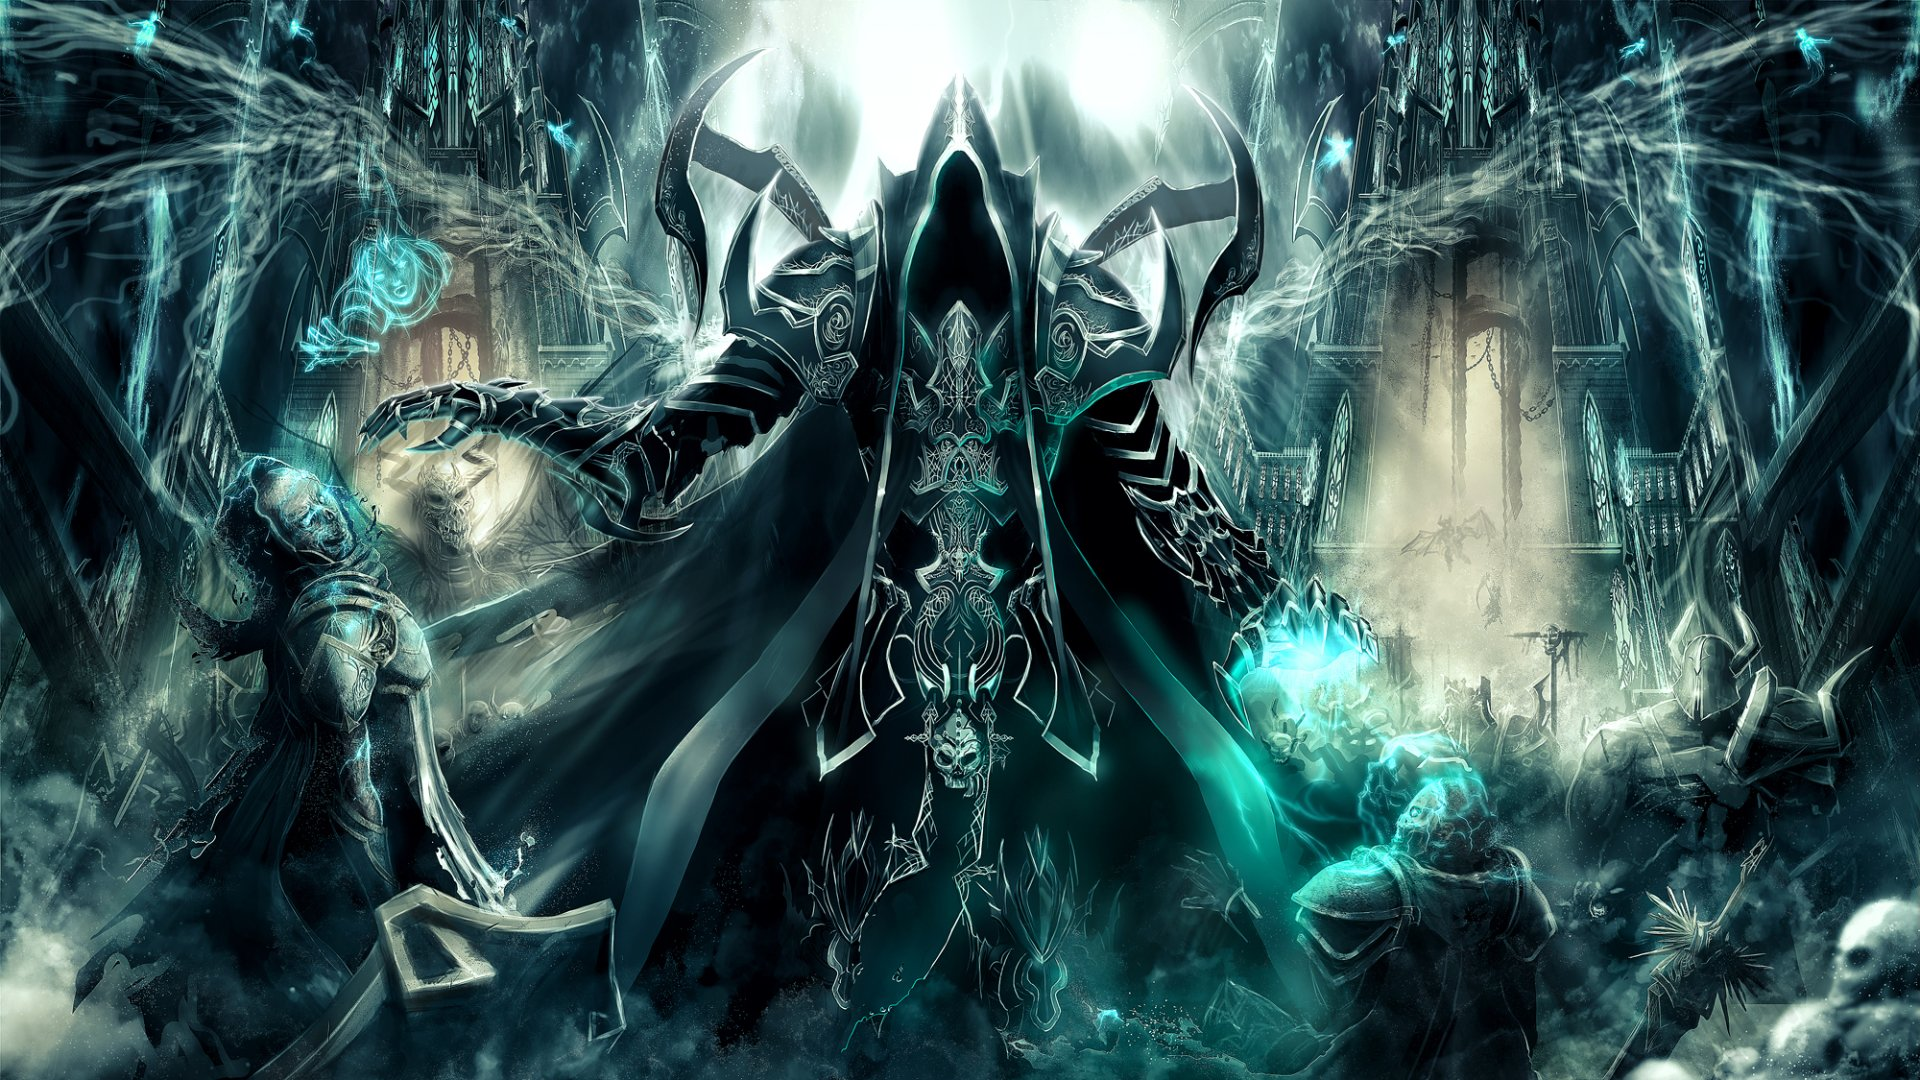 169 Diablo III: Reaper Of Souls HD Wallpapers | Background Images - Wallpaper Abyss